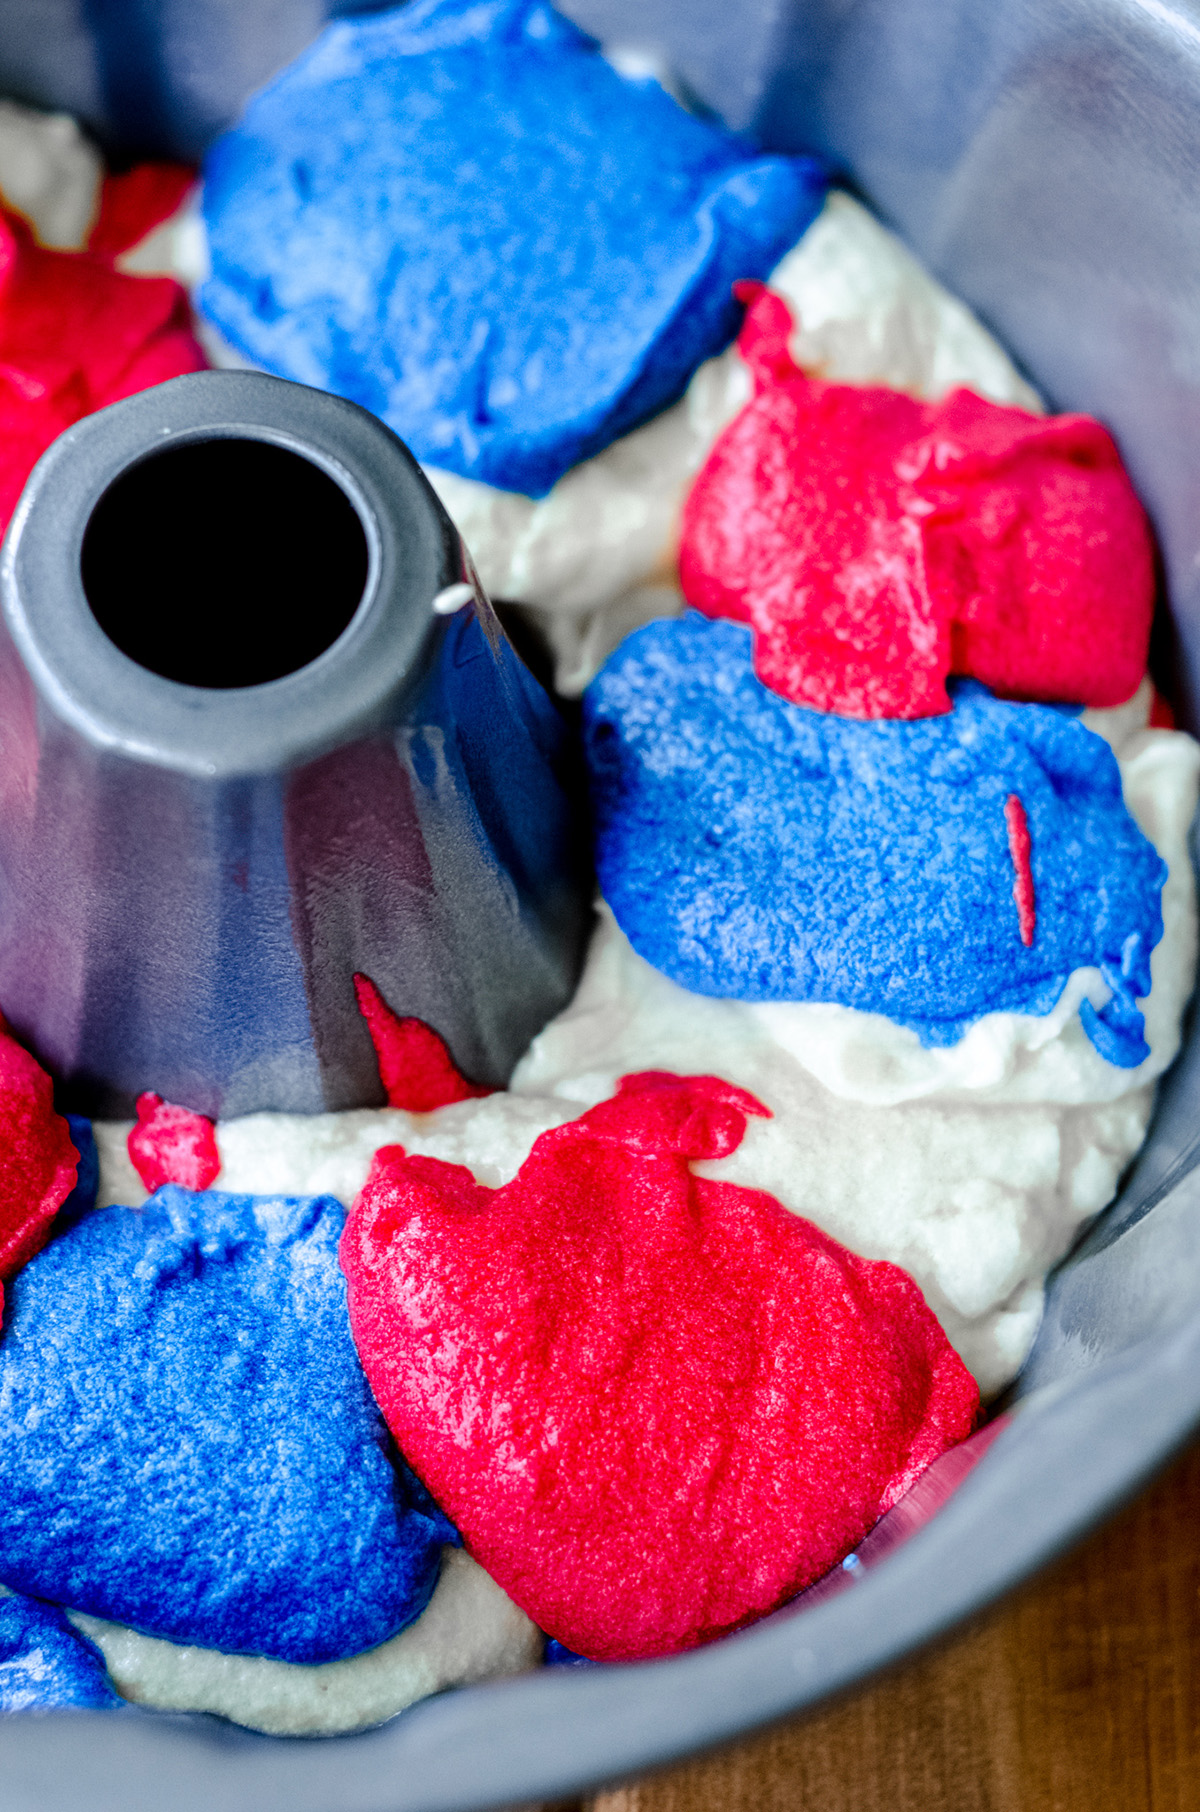 red white and blue swirl cake batter in a bundt pan